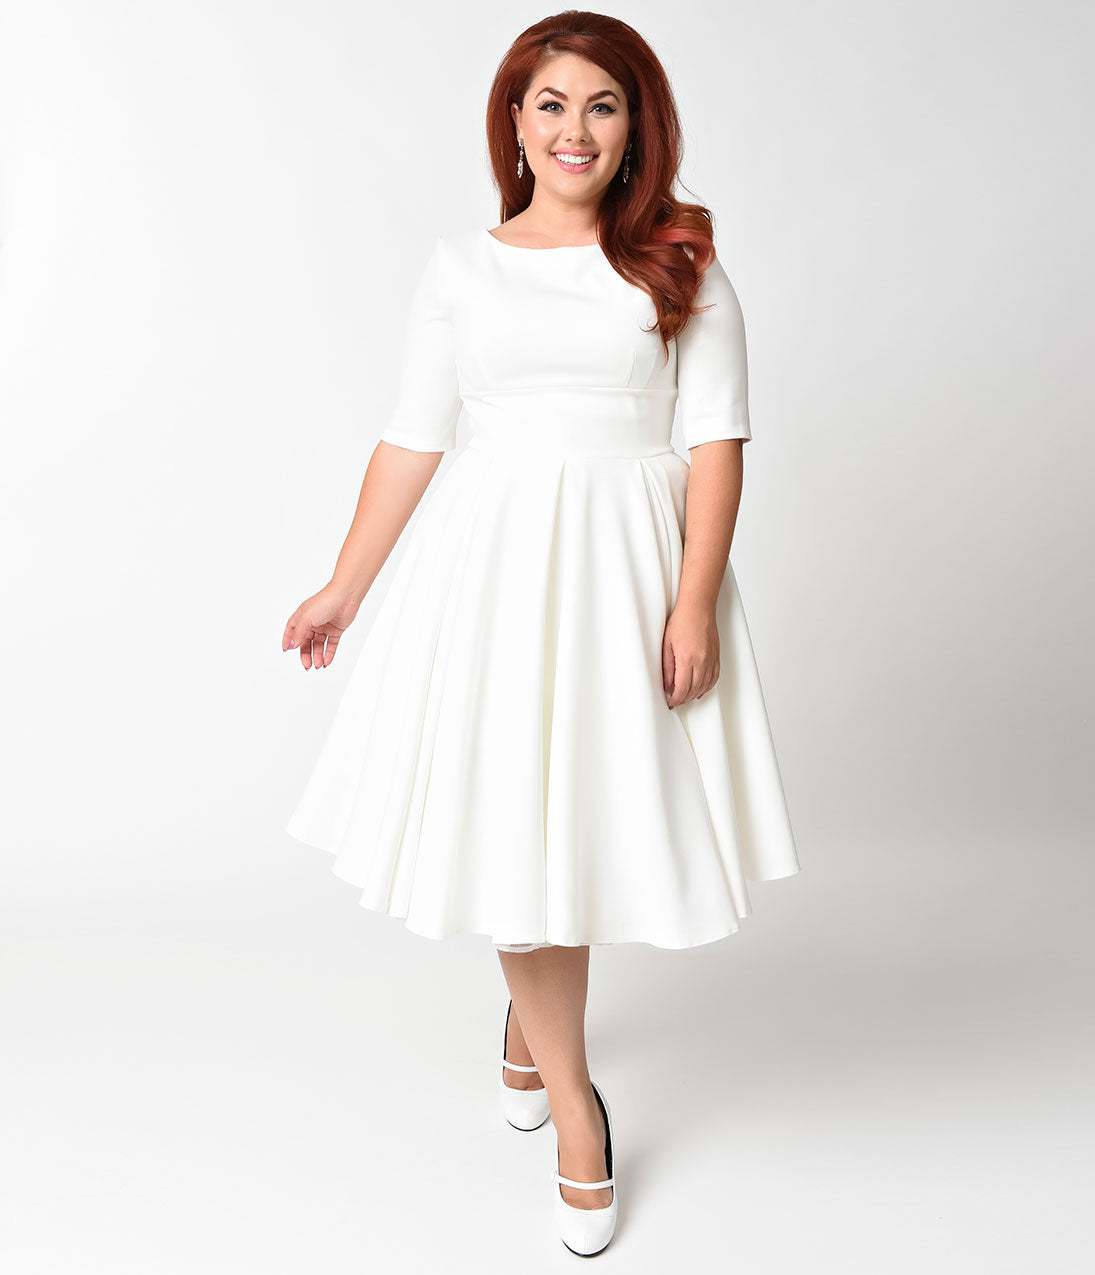 d3245d48d76 The Pretty Dress Company Plus Size Ivory Crepe Sleeved Hepburn Swing Dress